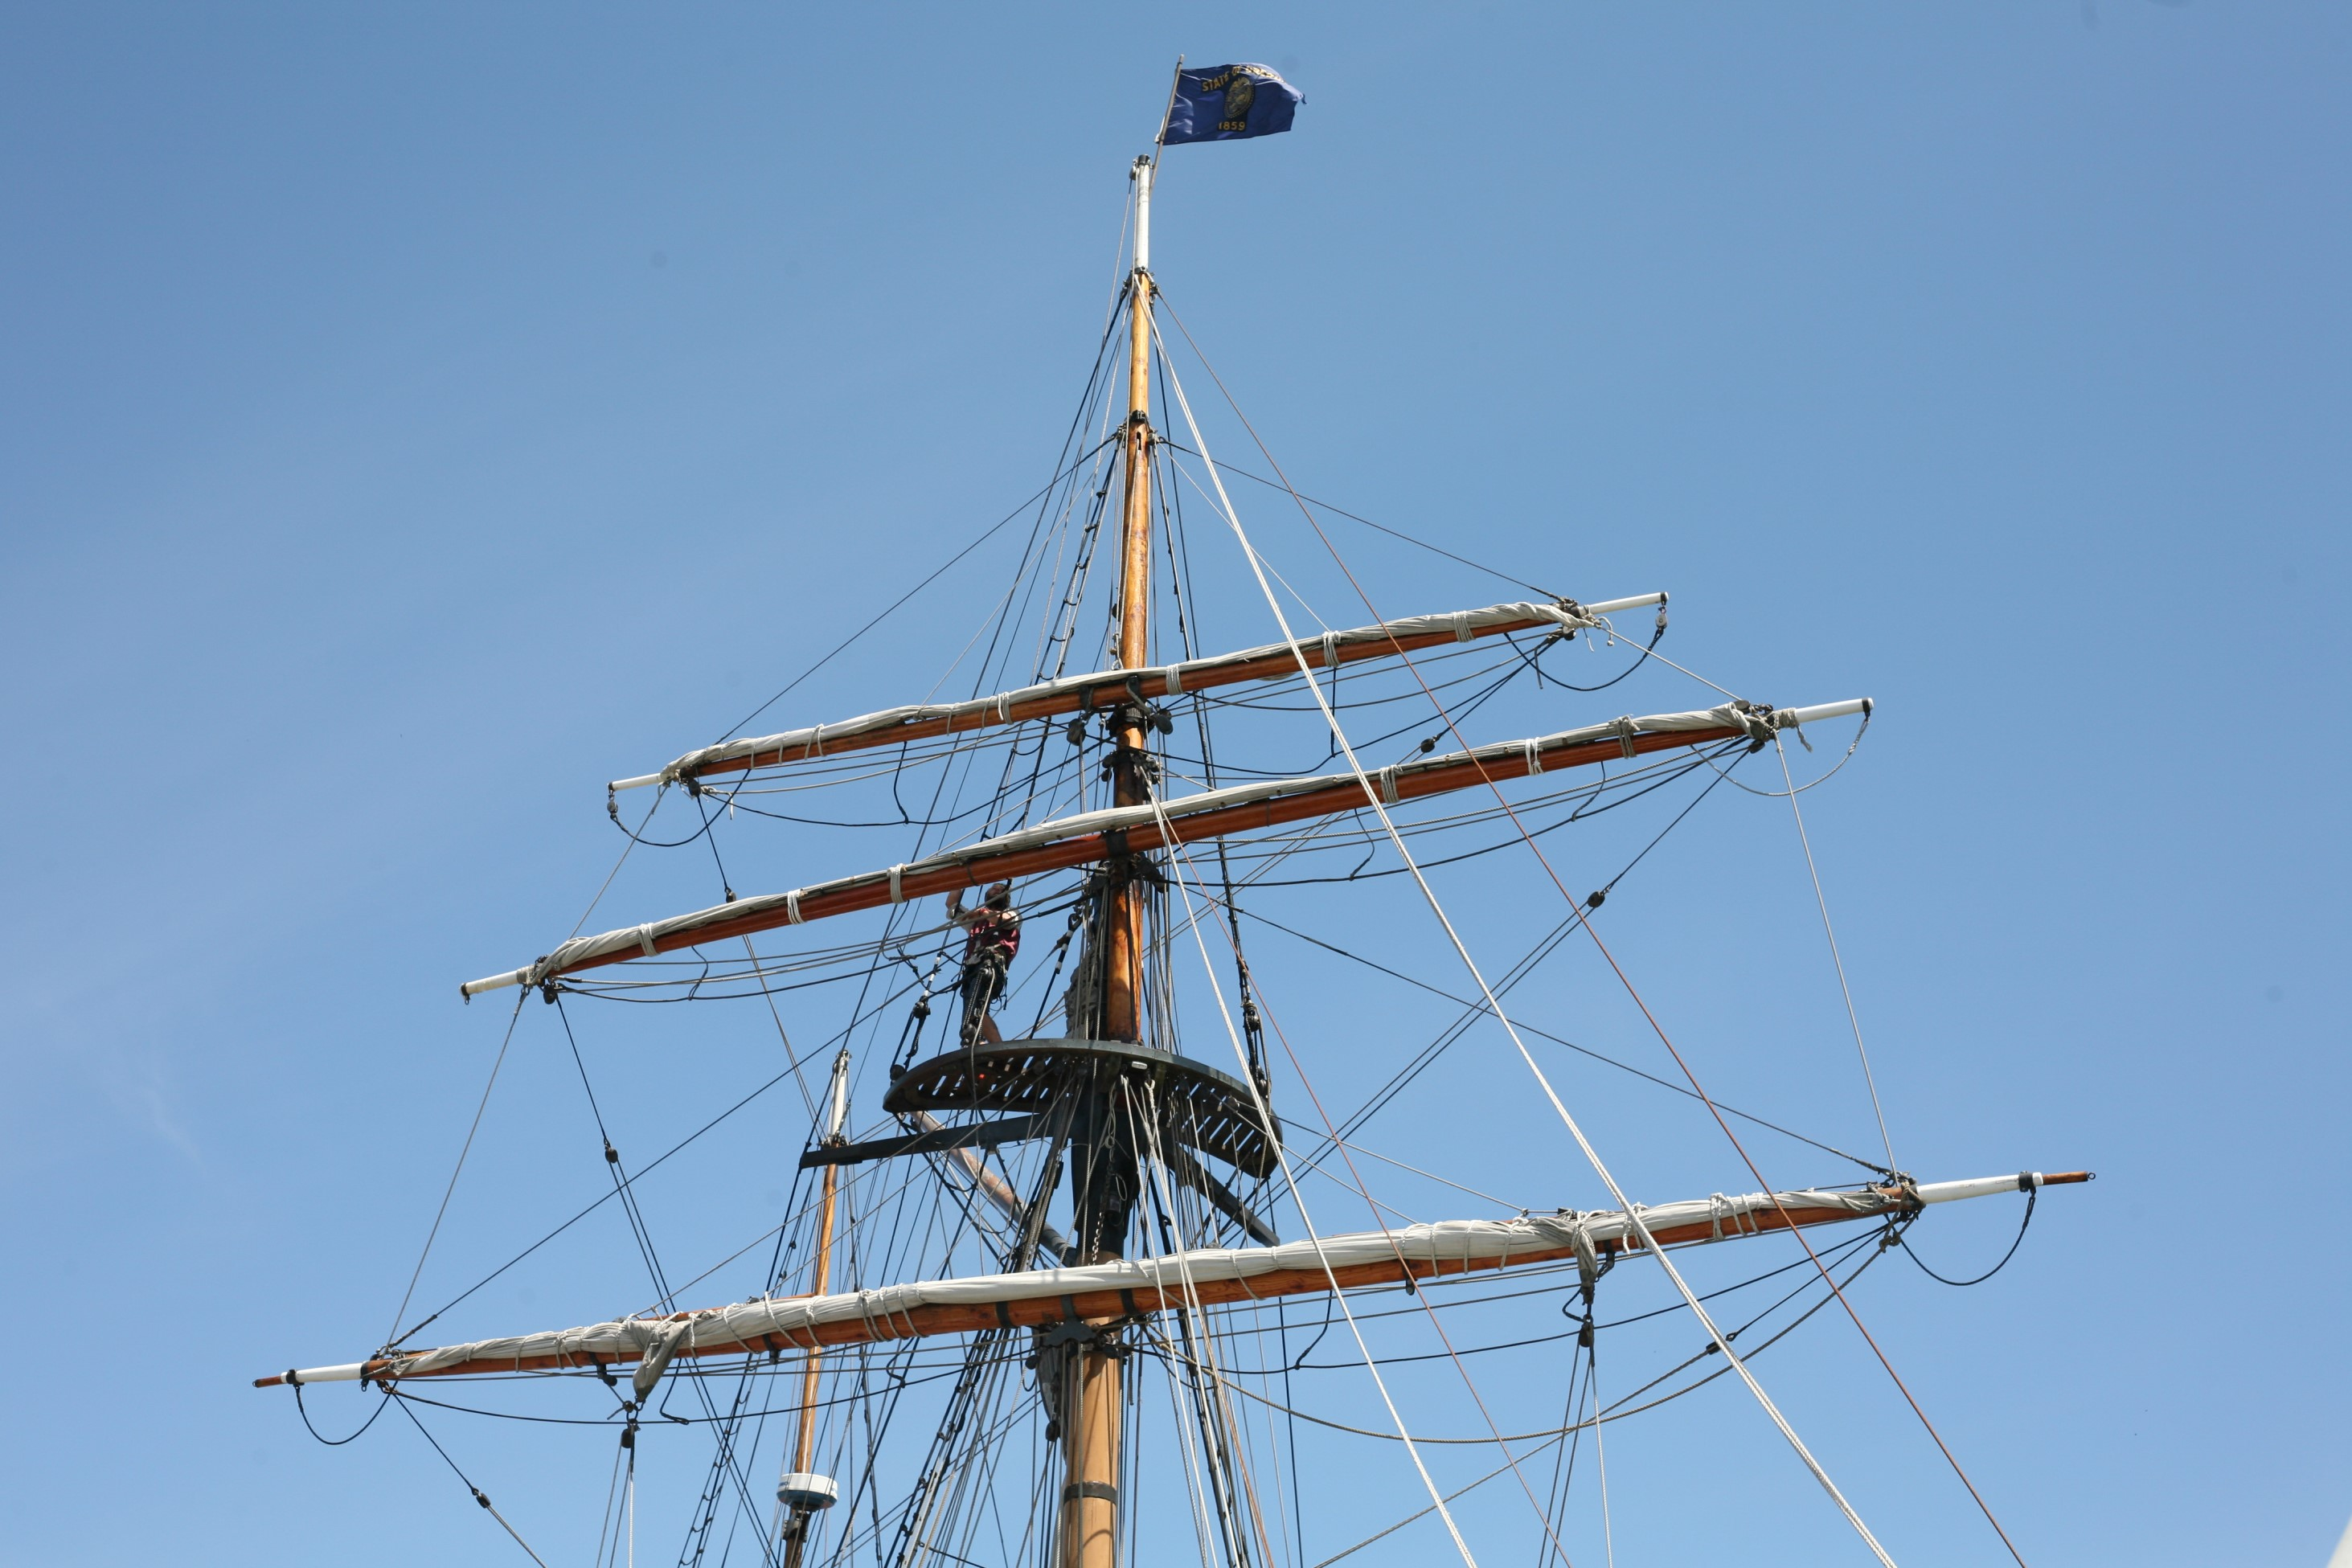 46th Annual Conference on Sail Training and Tall Ships ...